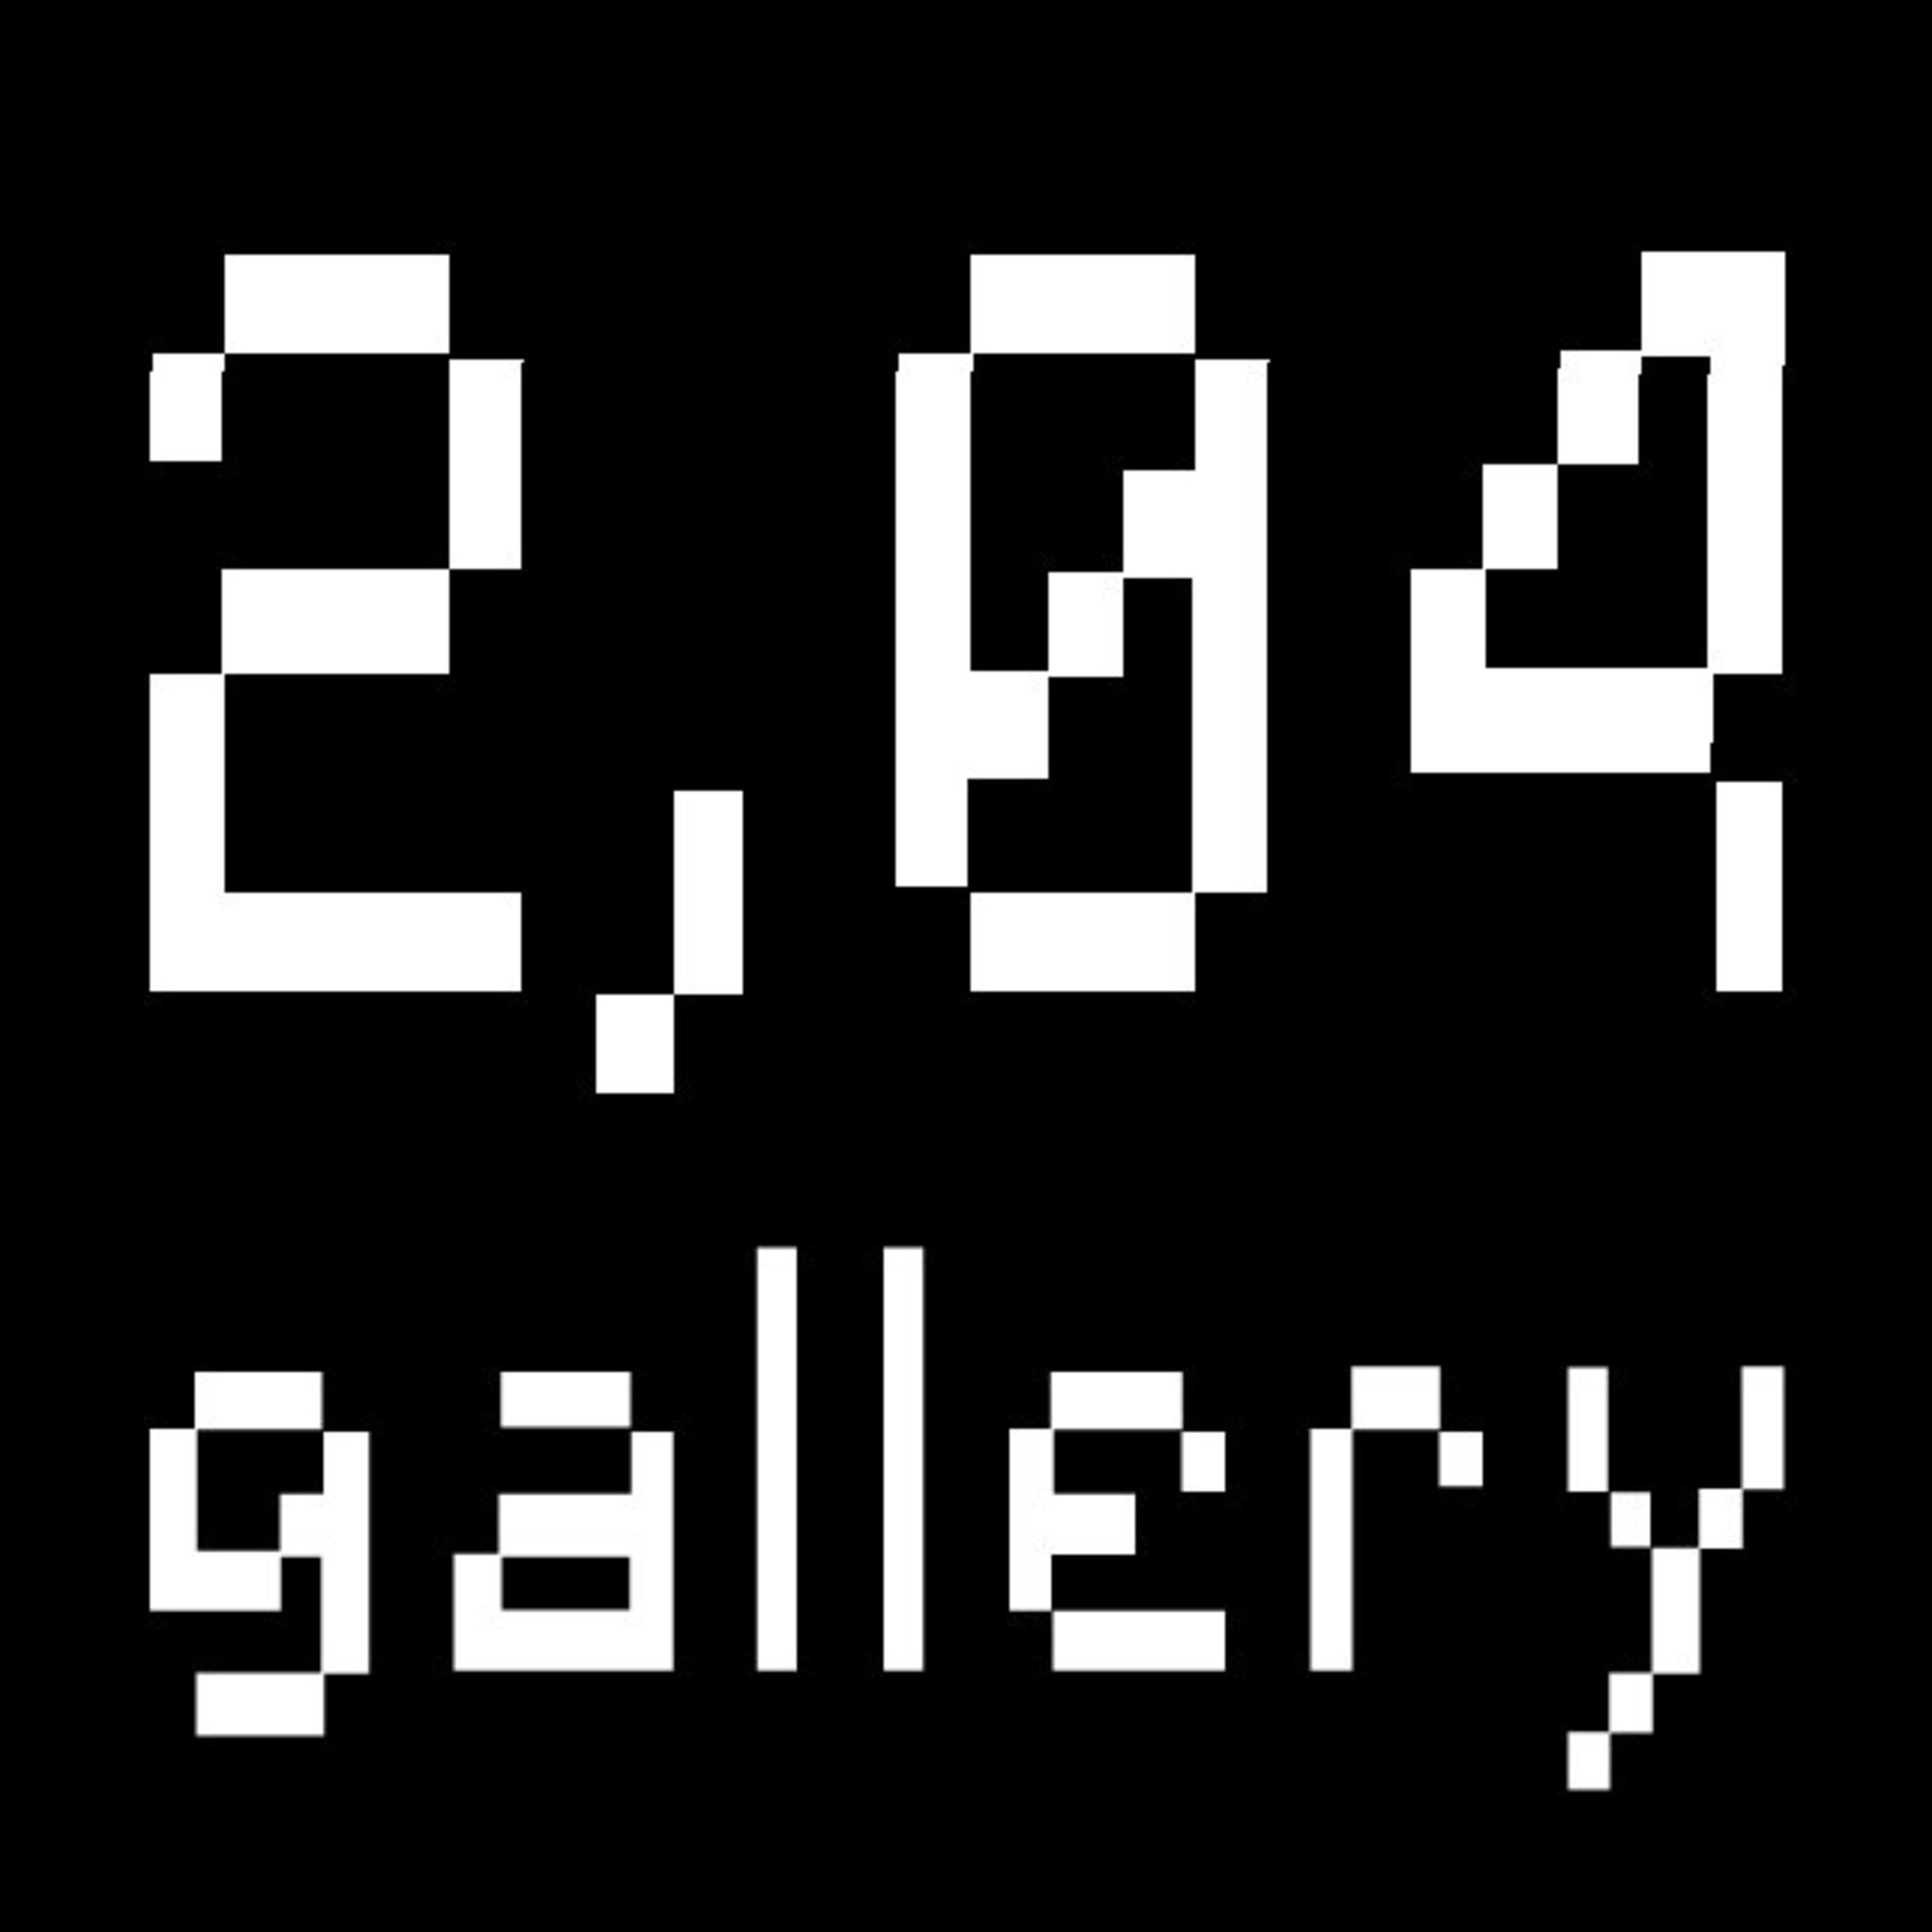 Experimental gallery 2,04